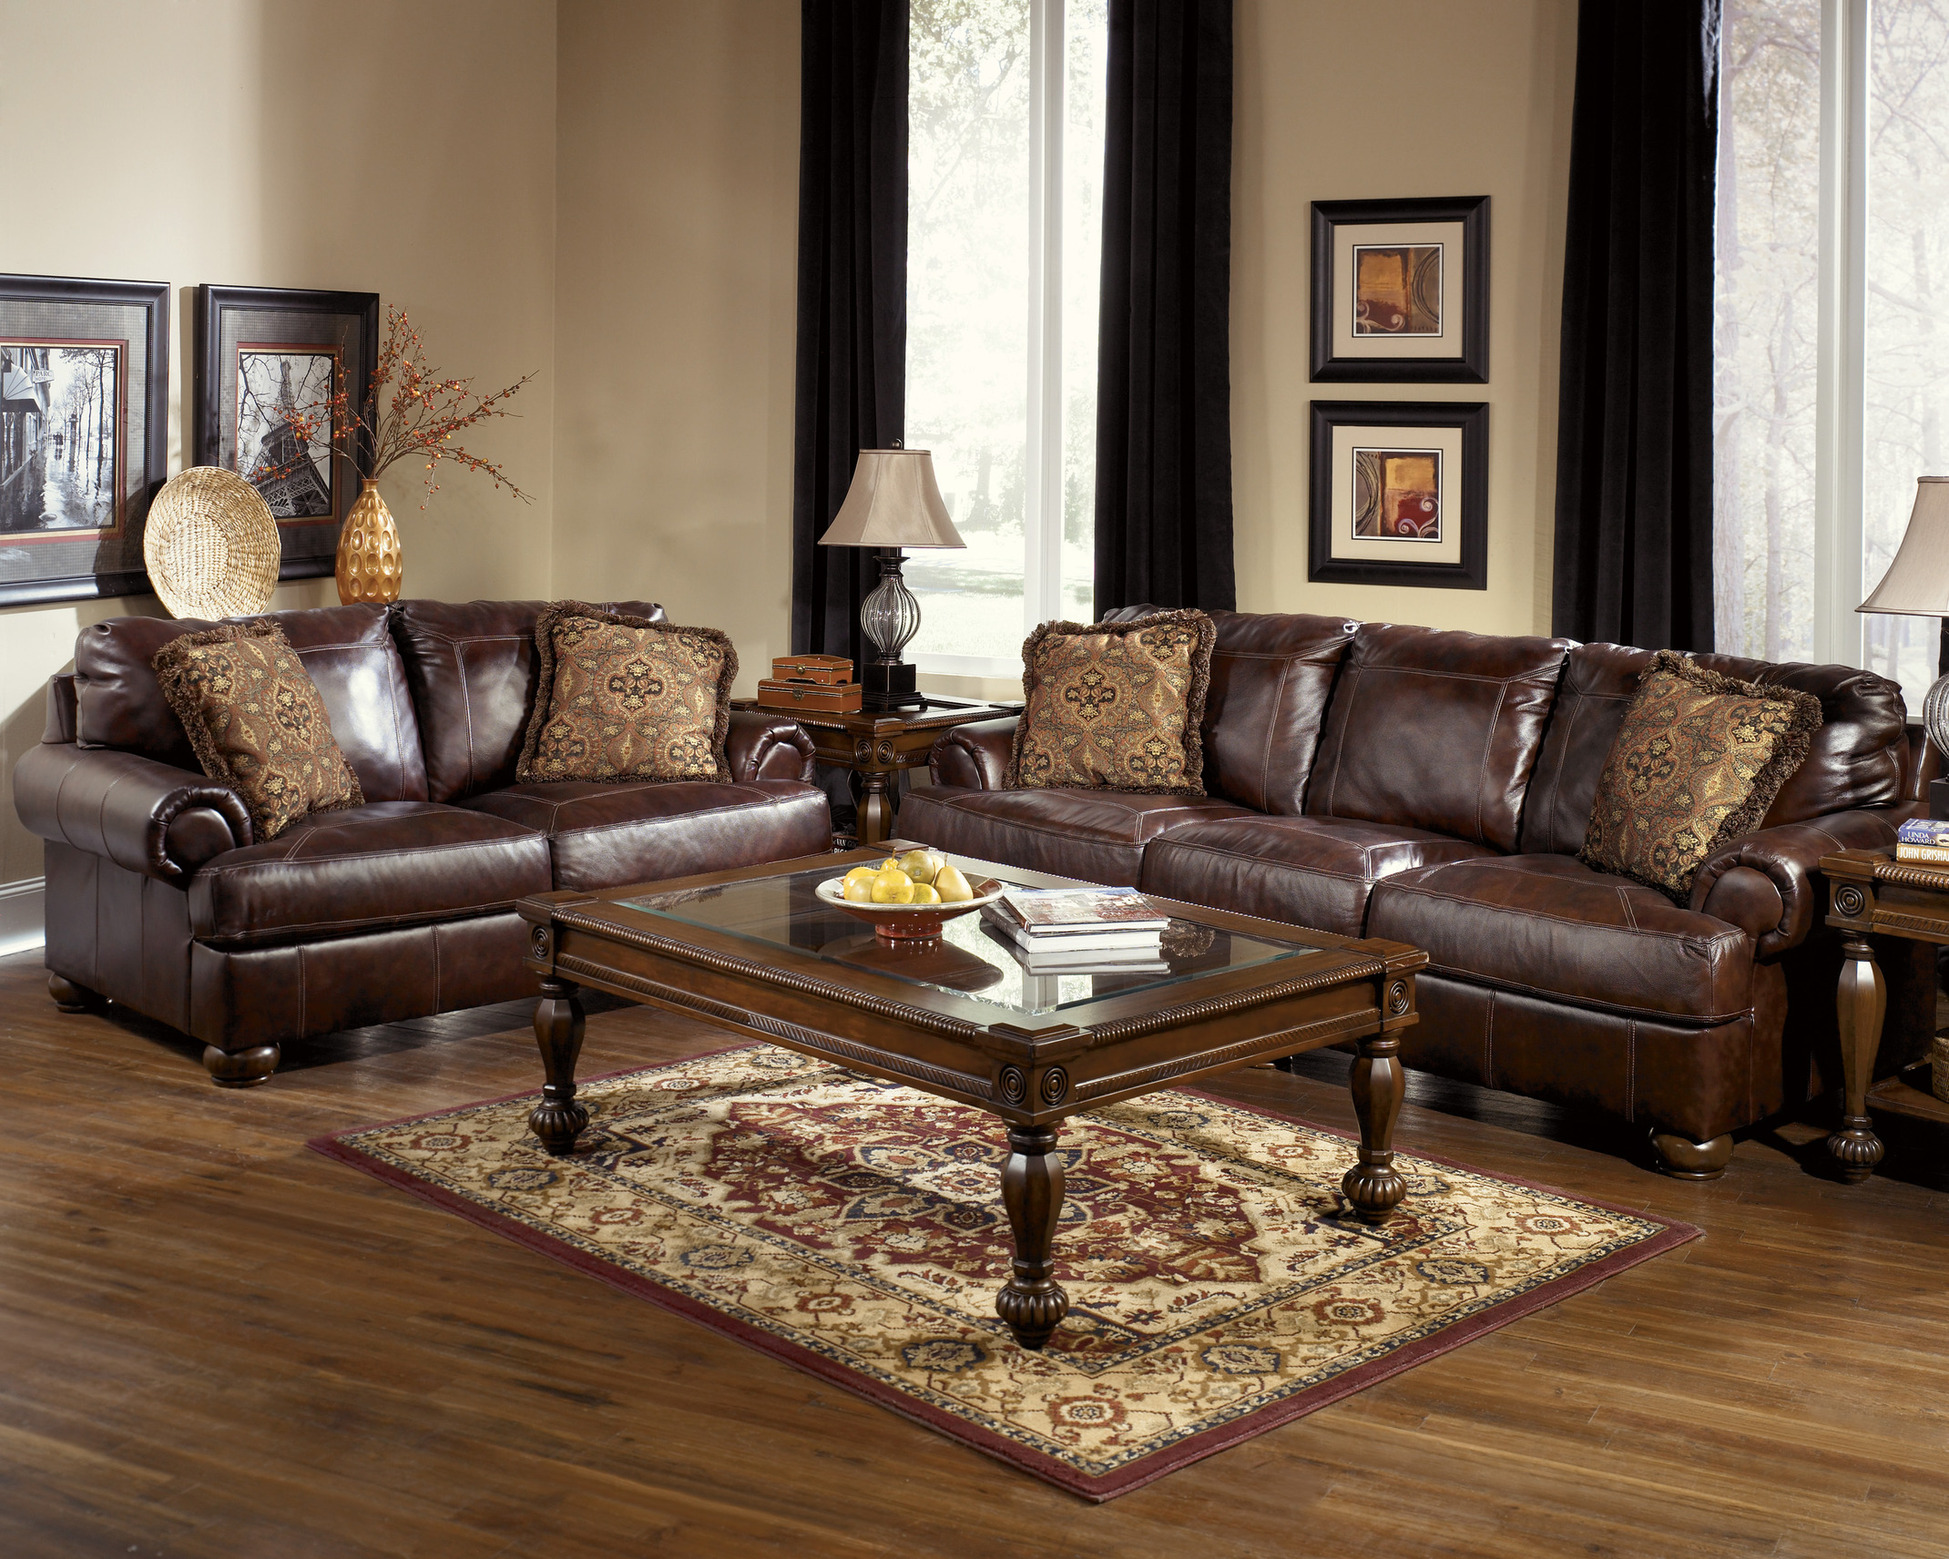 Benchcraft Leather Rustic Sofas